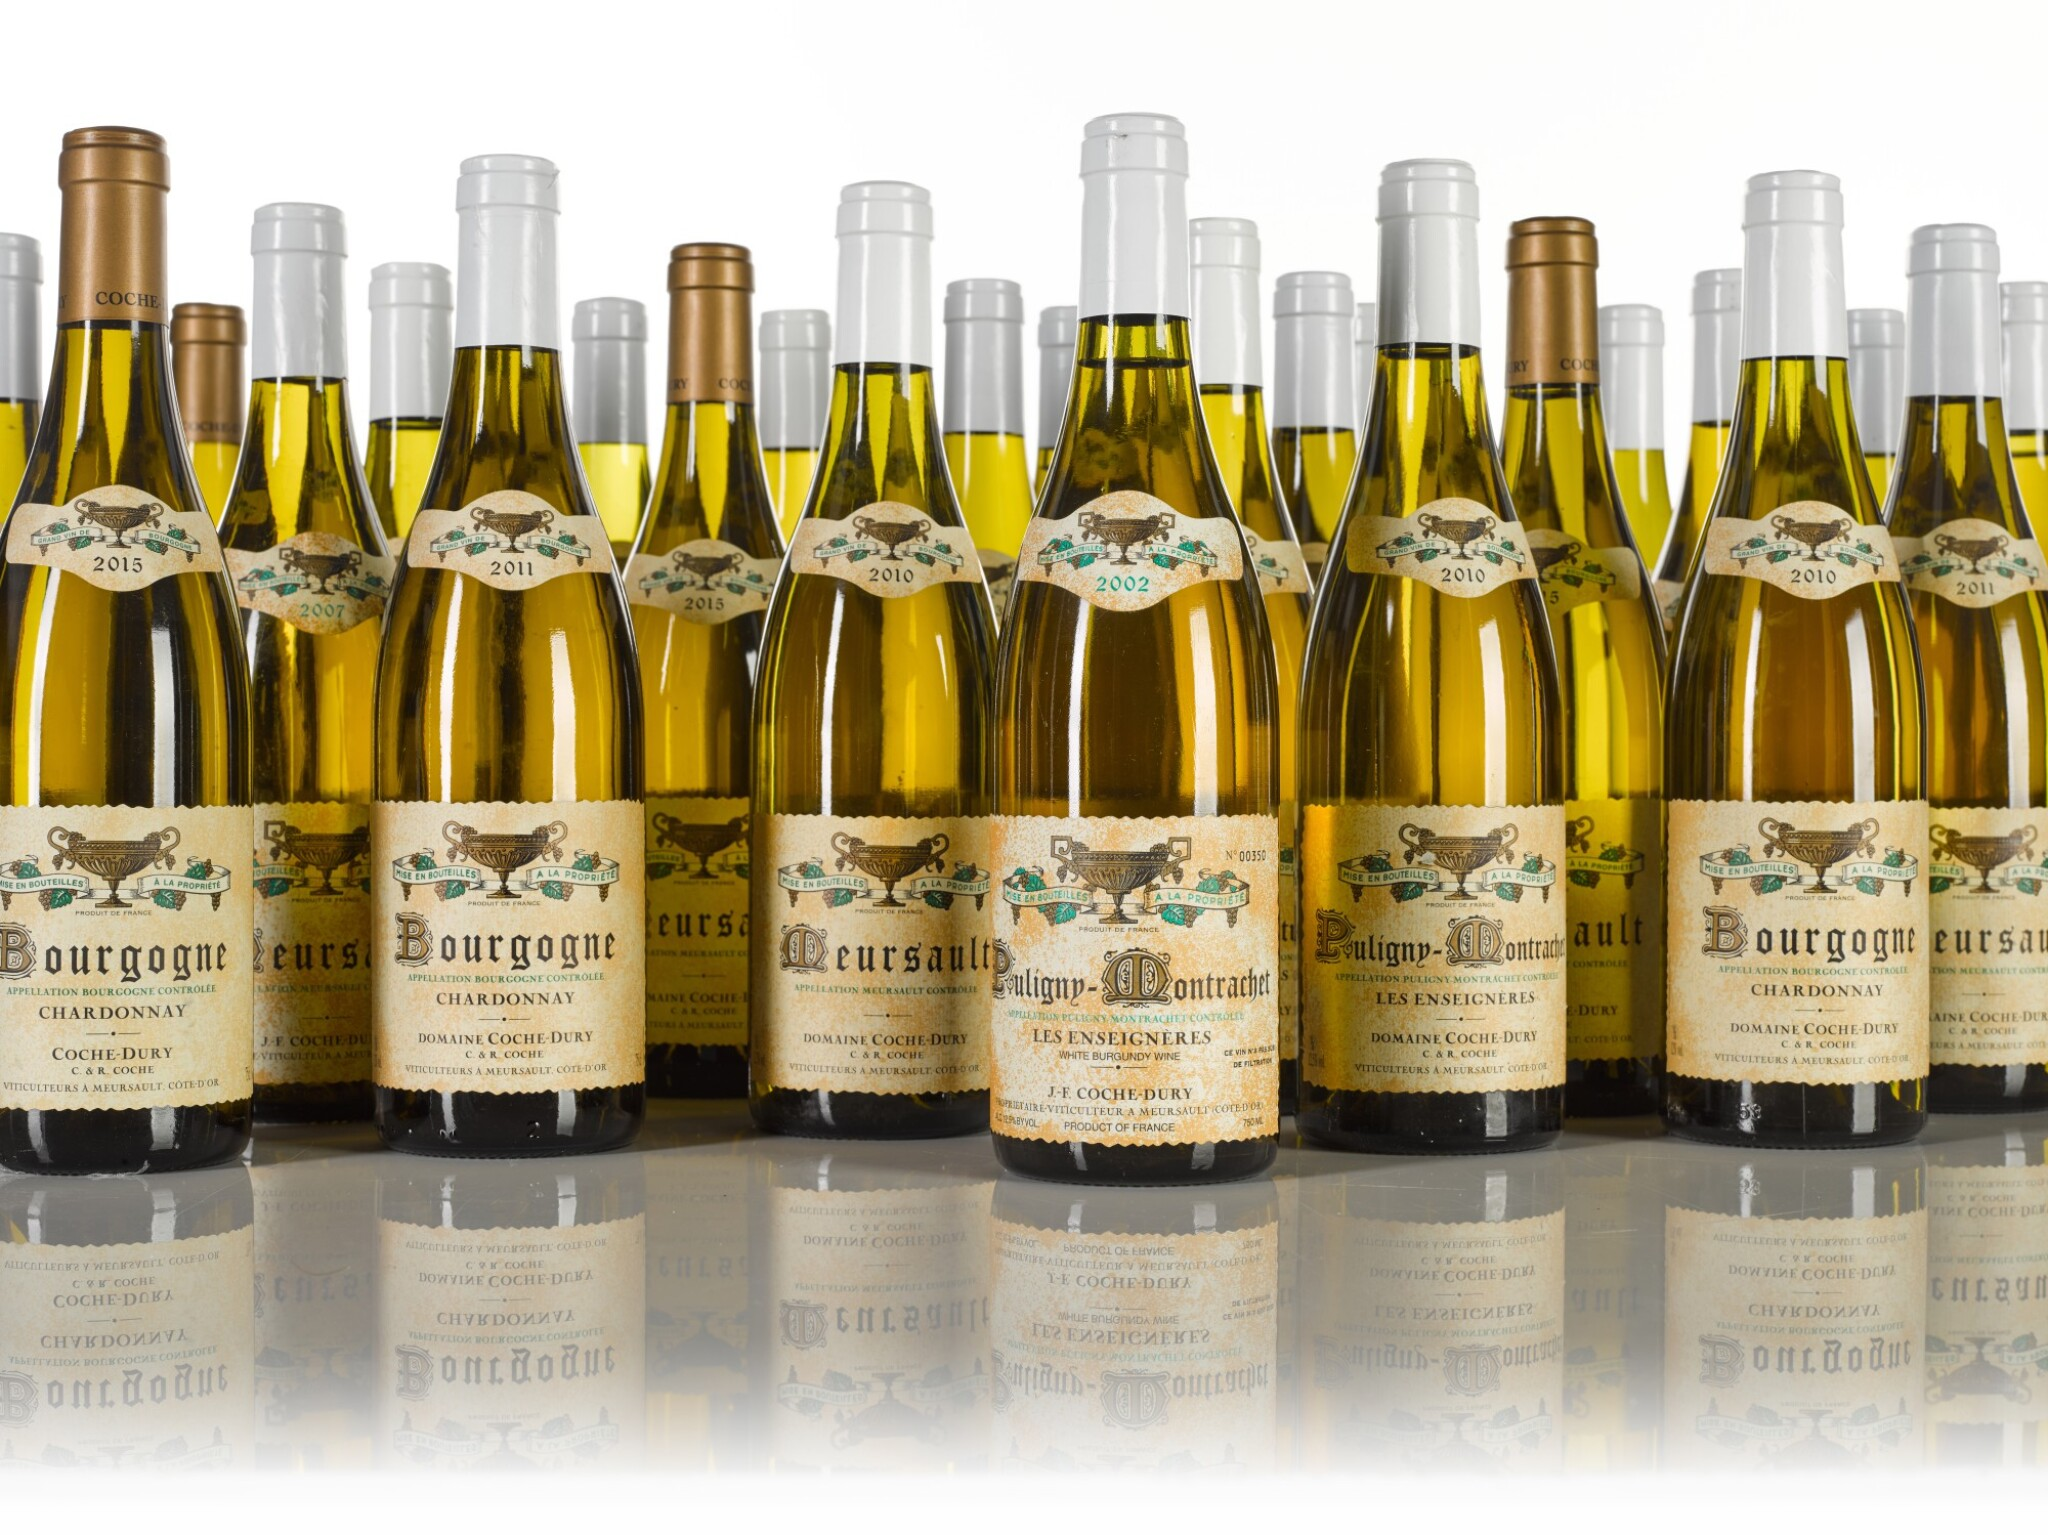 View full screen - View 1 of Lot 279. Bourgogne Chardonnay from J.-F. Coche-Dury, mixed case (11 BT).